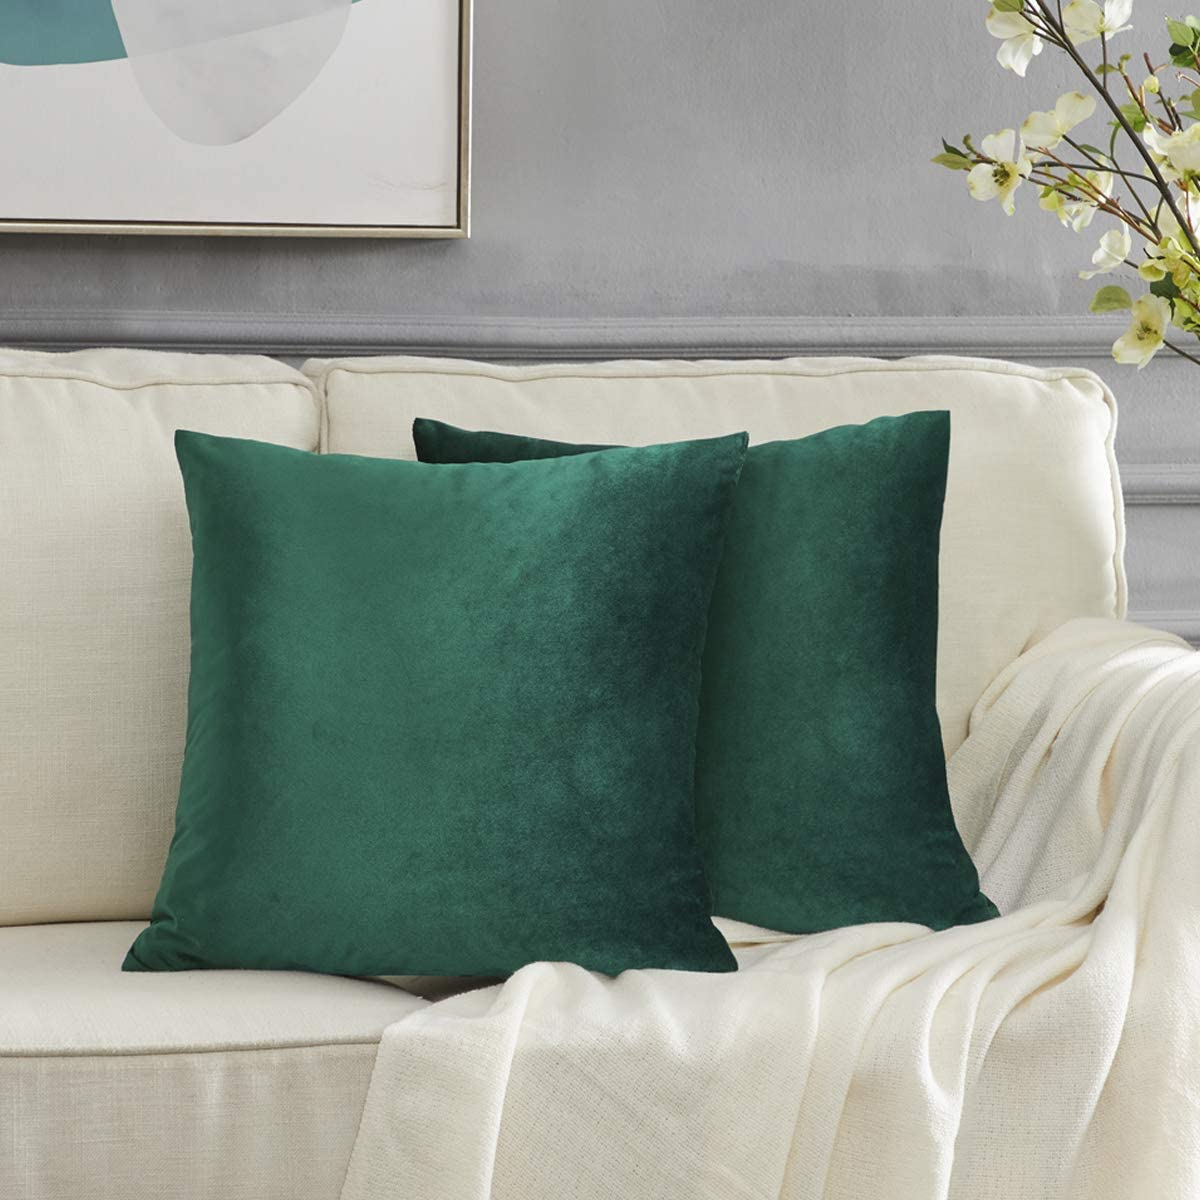 GIGIZAZA Decorative Throw Pillow Covers 20 x 20, Olive Green Soft Pillow Covers Velvet,Christmas Decor Square Cushion Covers